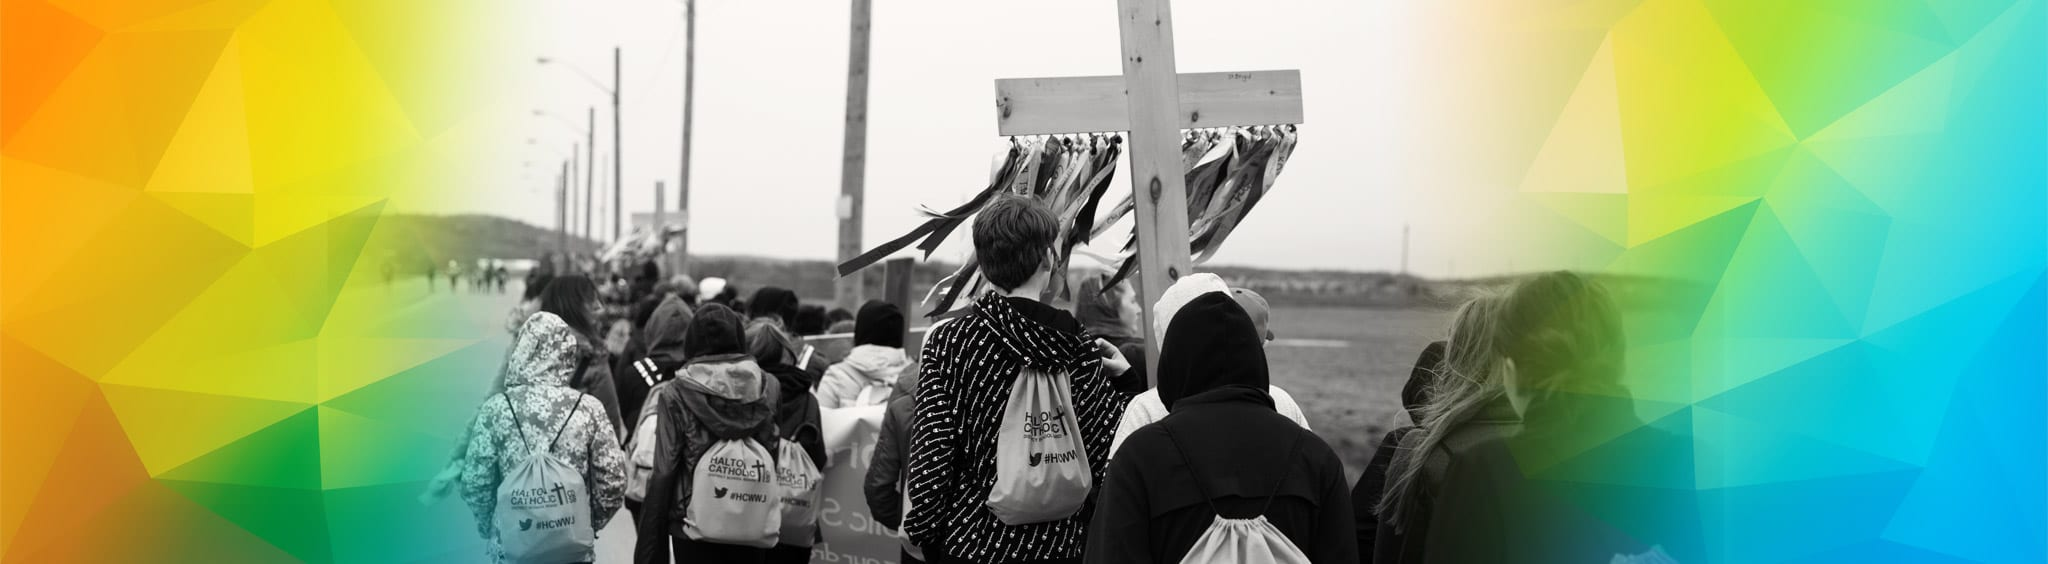 Students walking together carrying cross as part of Walk With Jesus event